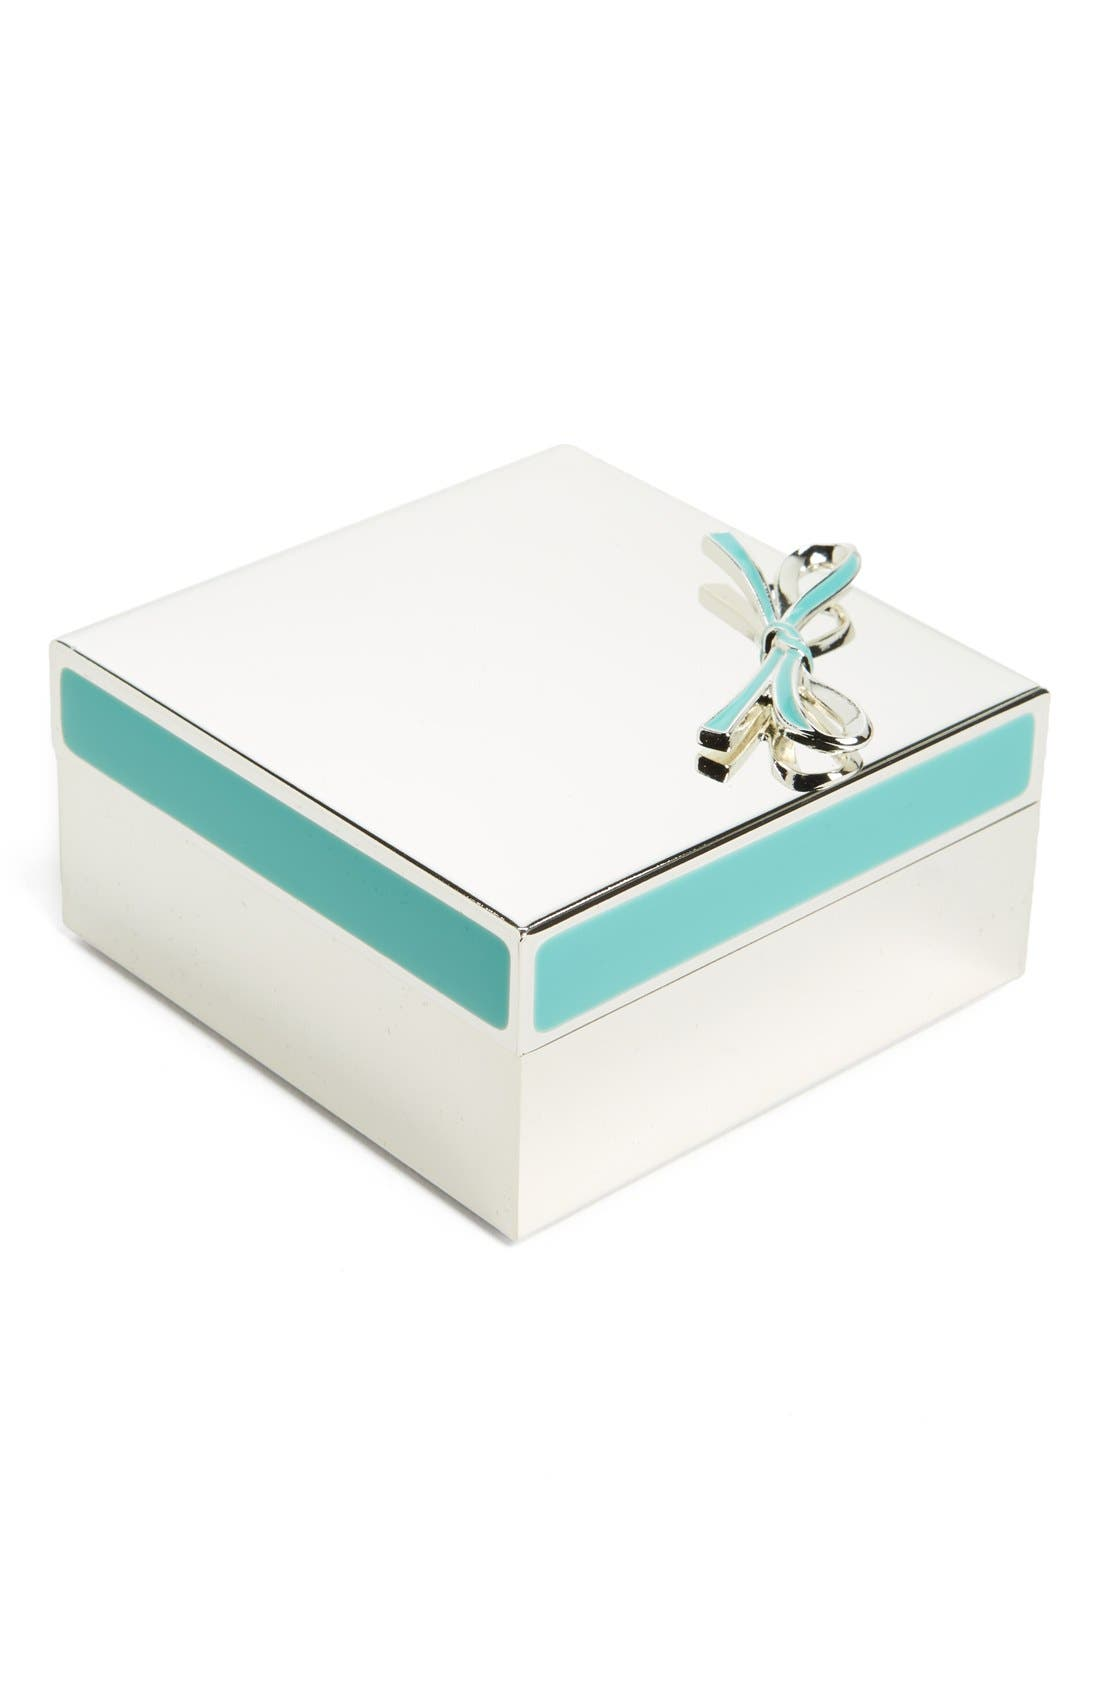 Alternate Image 1 Selected - kate spade new york 'vienna lane' keepsake box